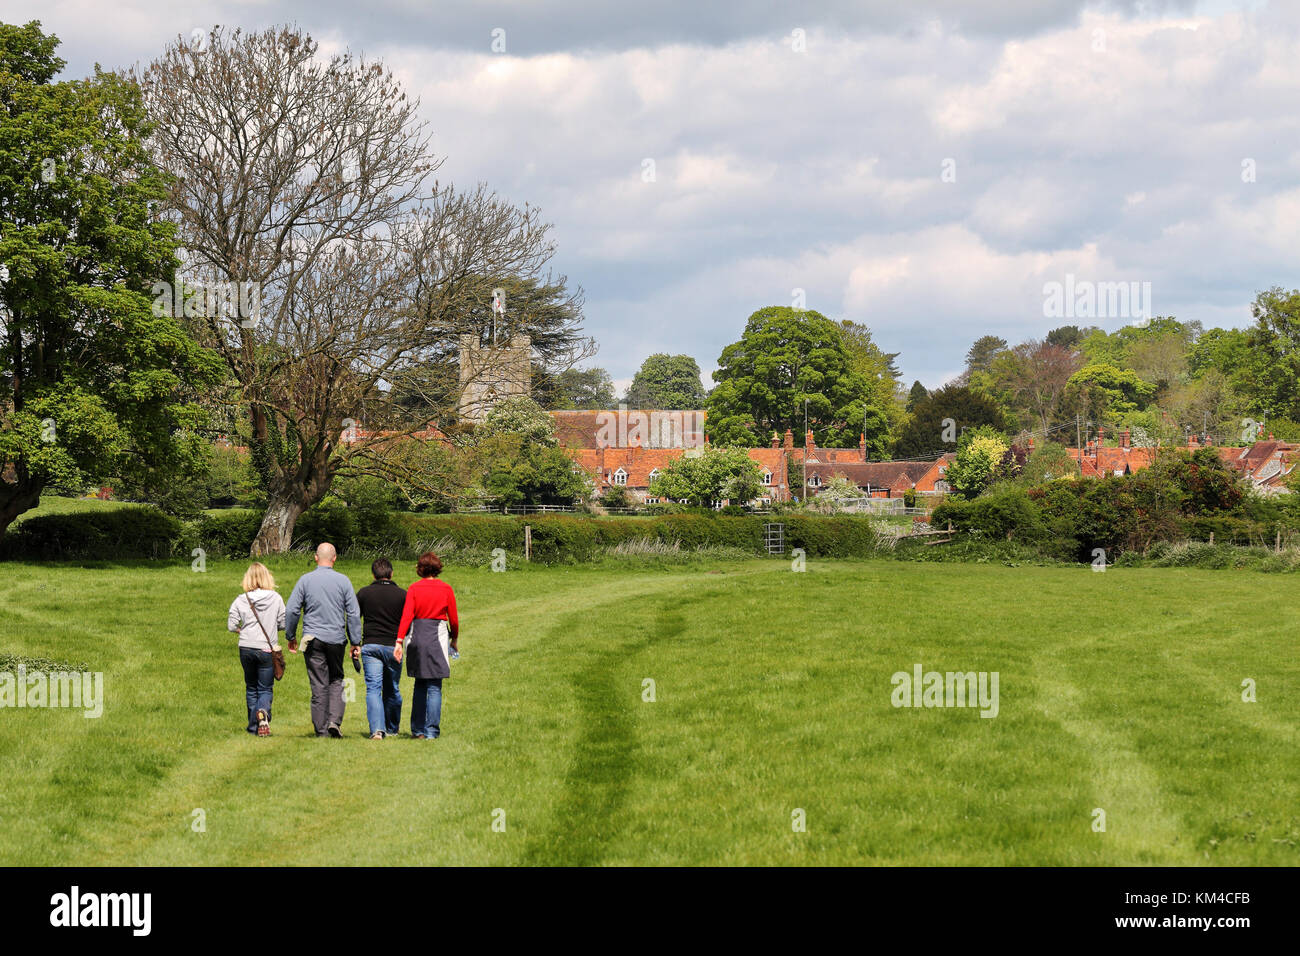 An English Landscape in the Chiltern Hills with the Village of Hambleden - Stock Image